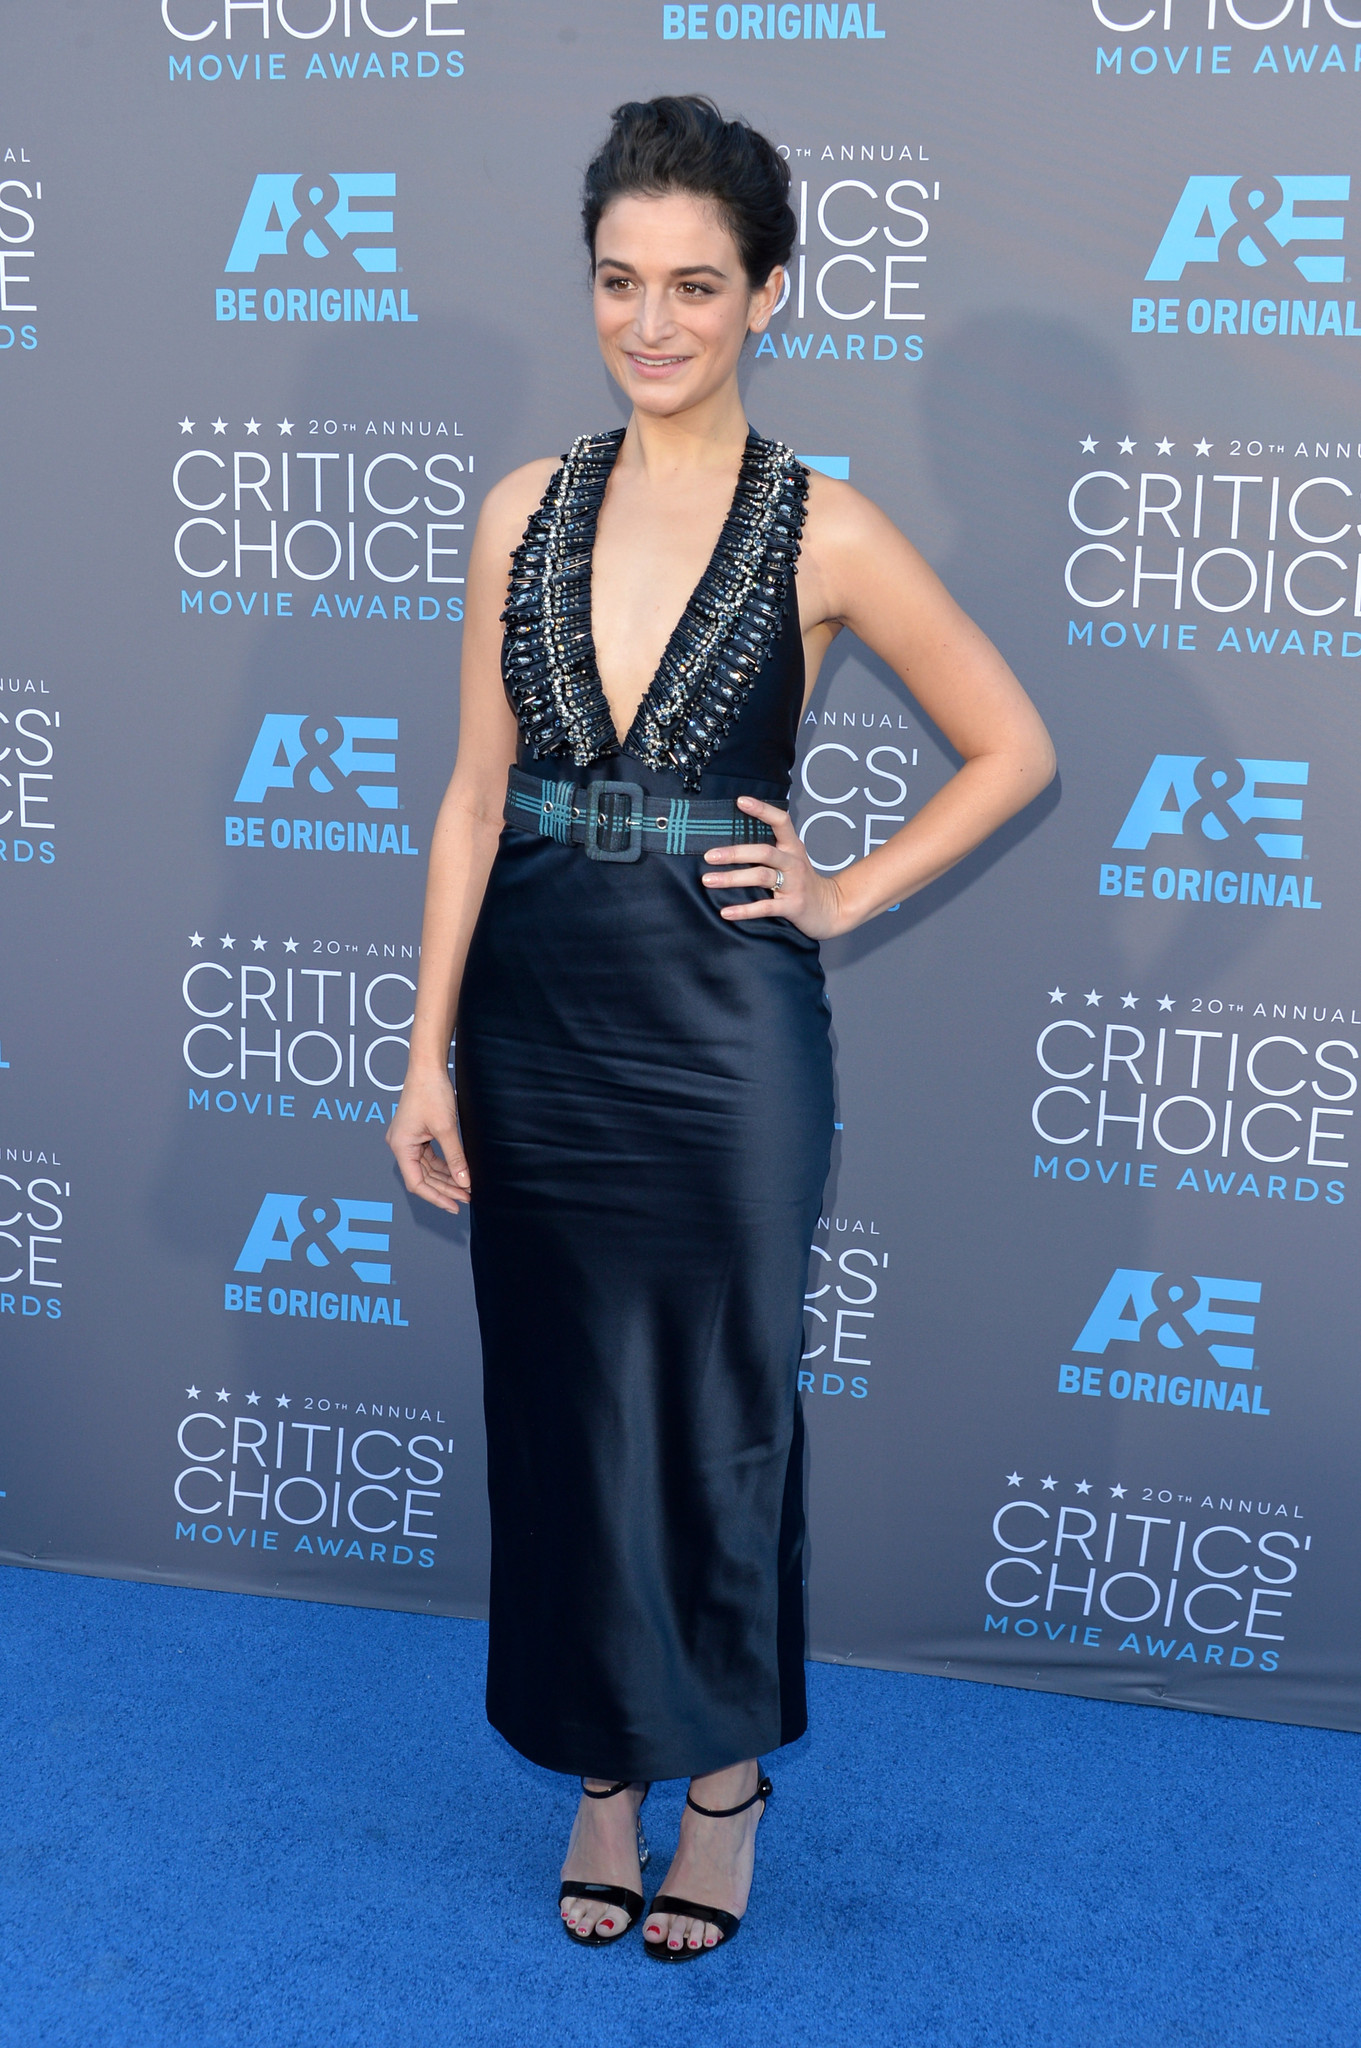 jenny-slate-miu-miu-2015-critics-choice-movie-awards